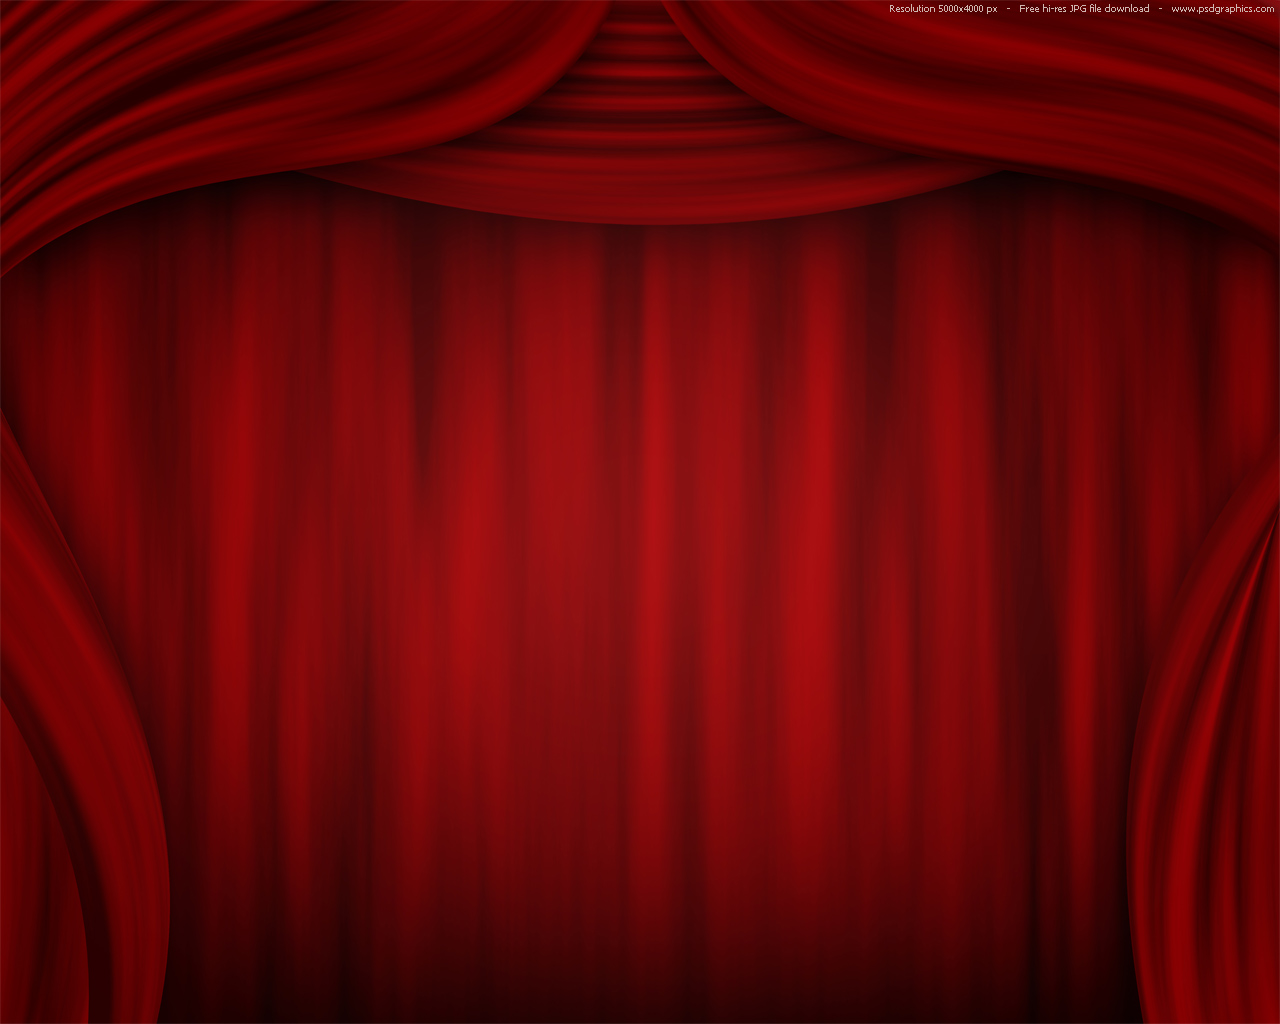 Red velvet curtain wallpaper - Red Velvet Wallpaper